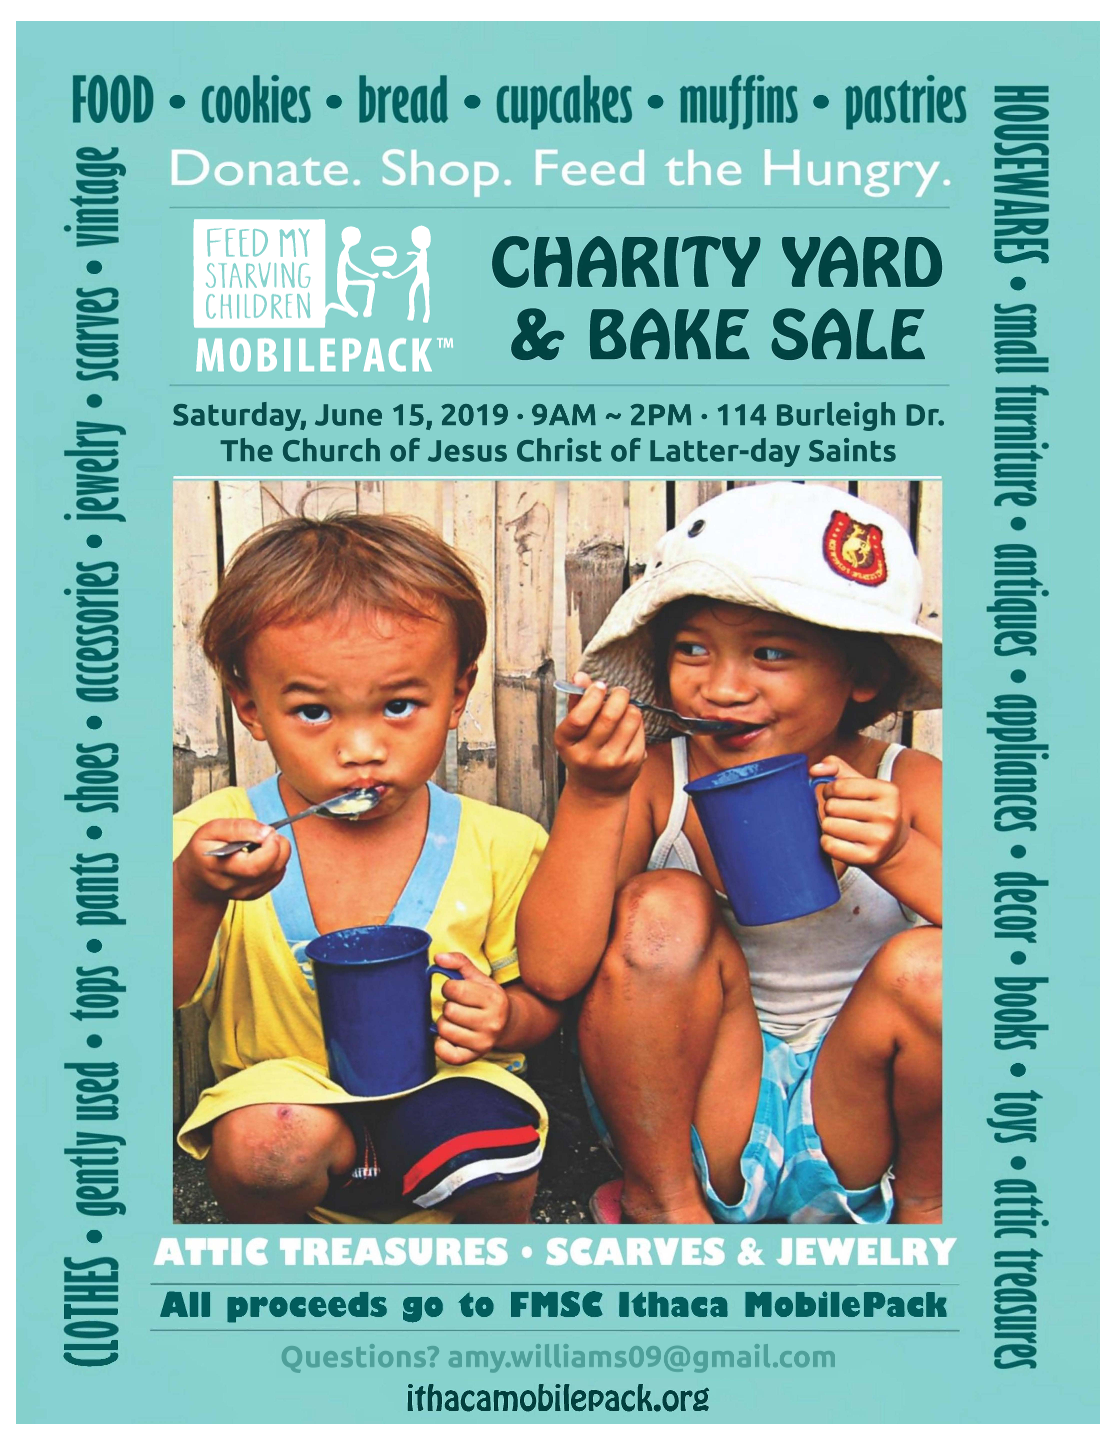 5th ANNUAL CHARITY YARD and BAKE SALE image 1